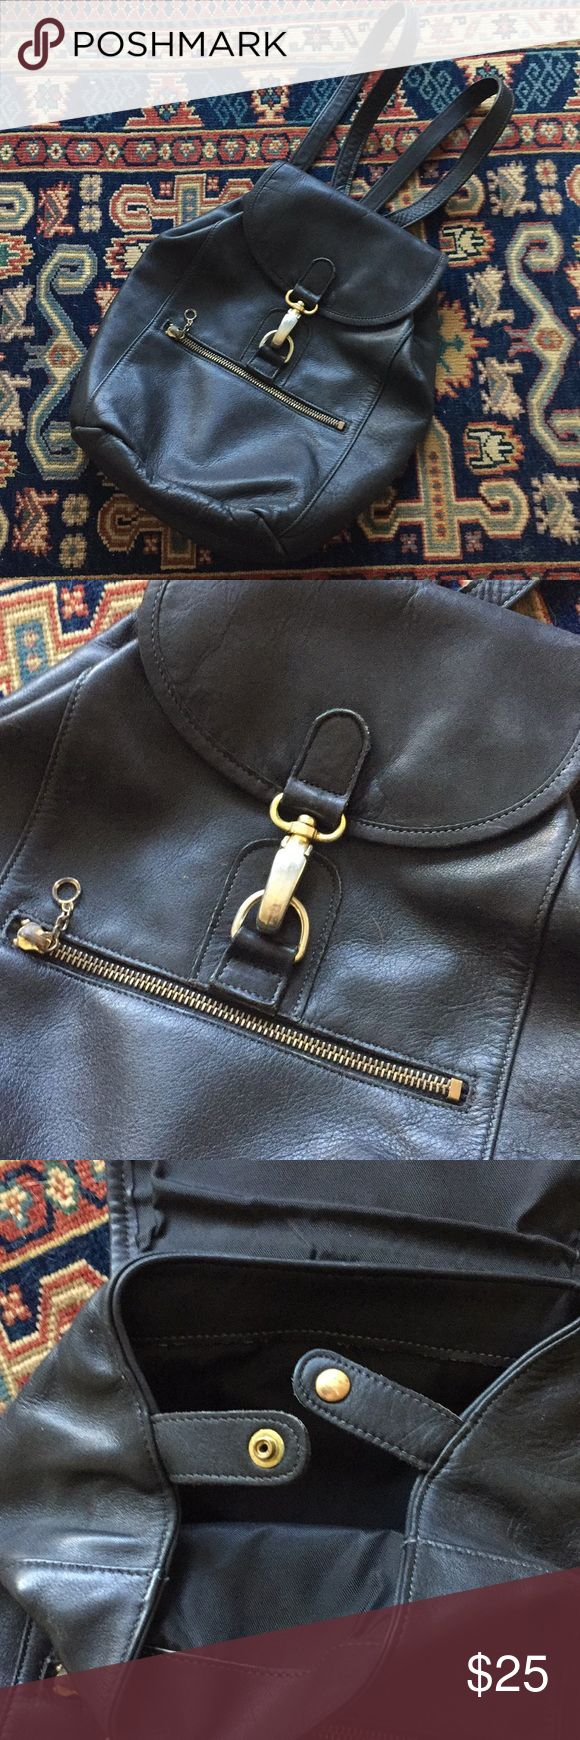 Vintage Leather Backpack Vintage used condition. Wear on zipper but otherwise in great condition. Vintage Bags Backpacks